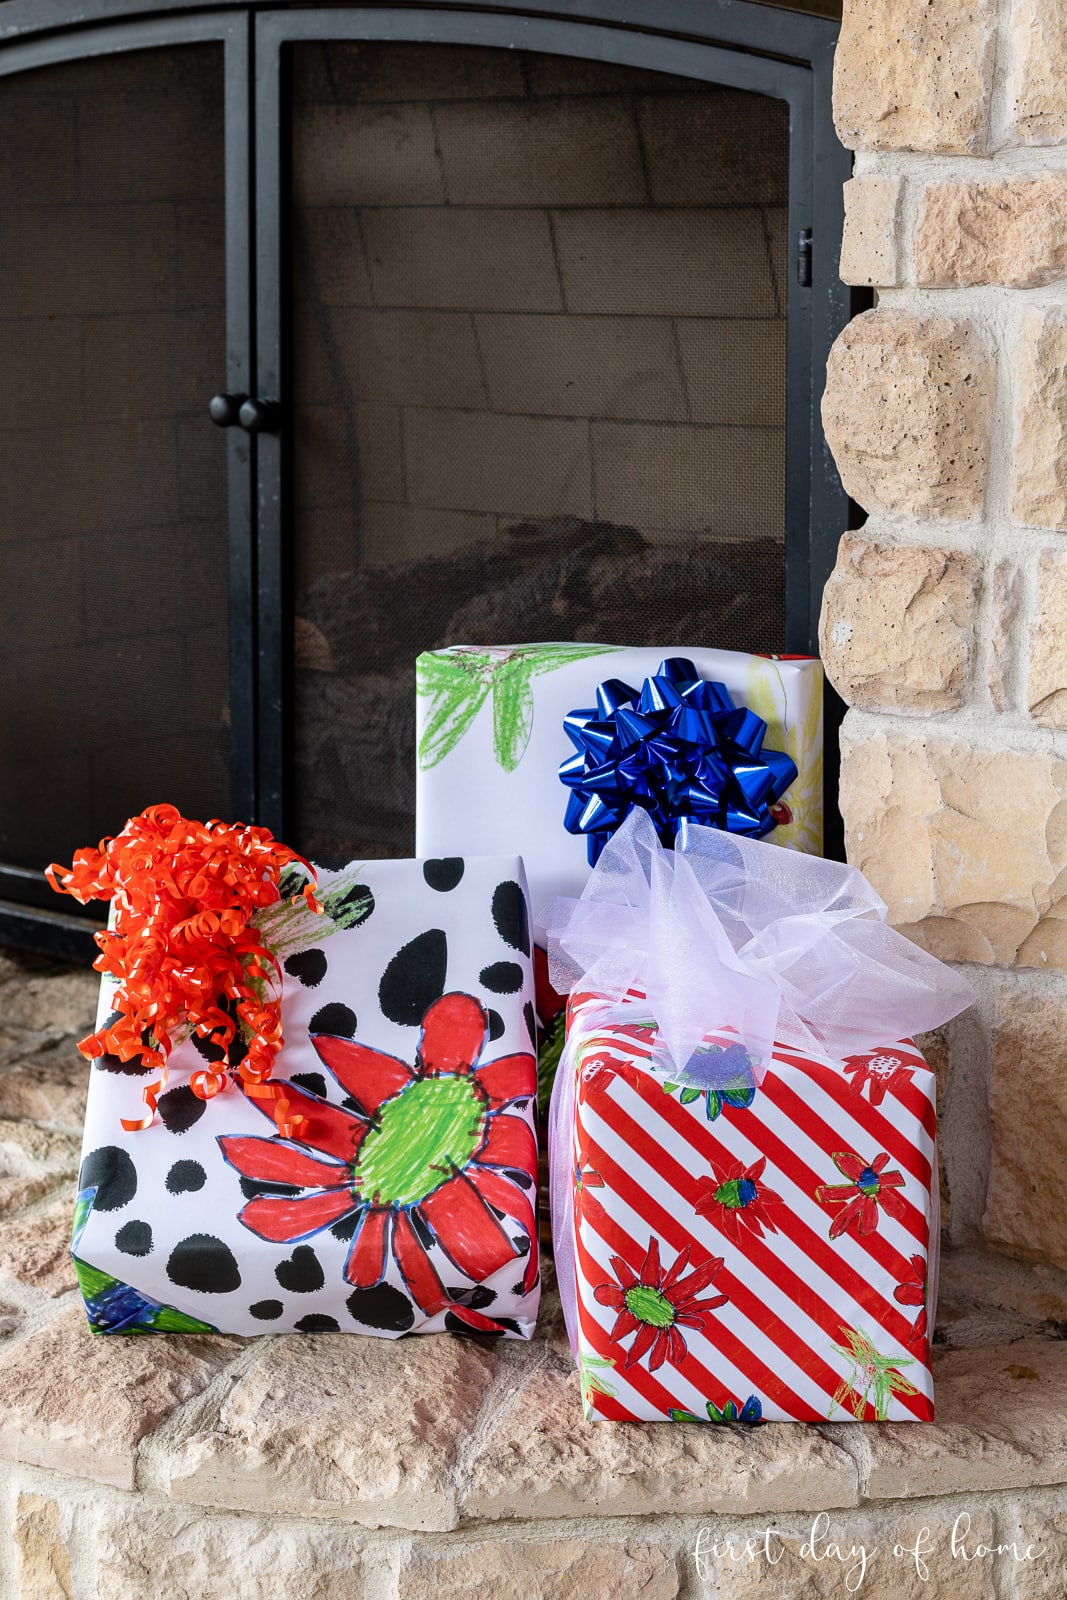 Trio of gifts wrapped in DIY wrapping paper in a red, white, green and black floral pattern